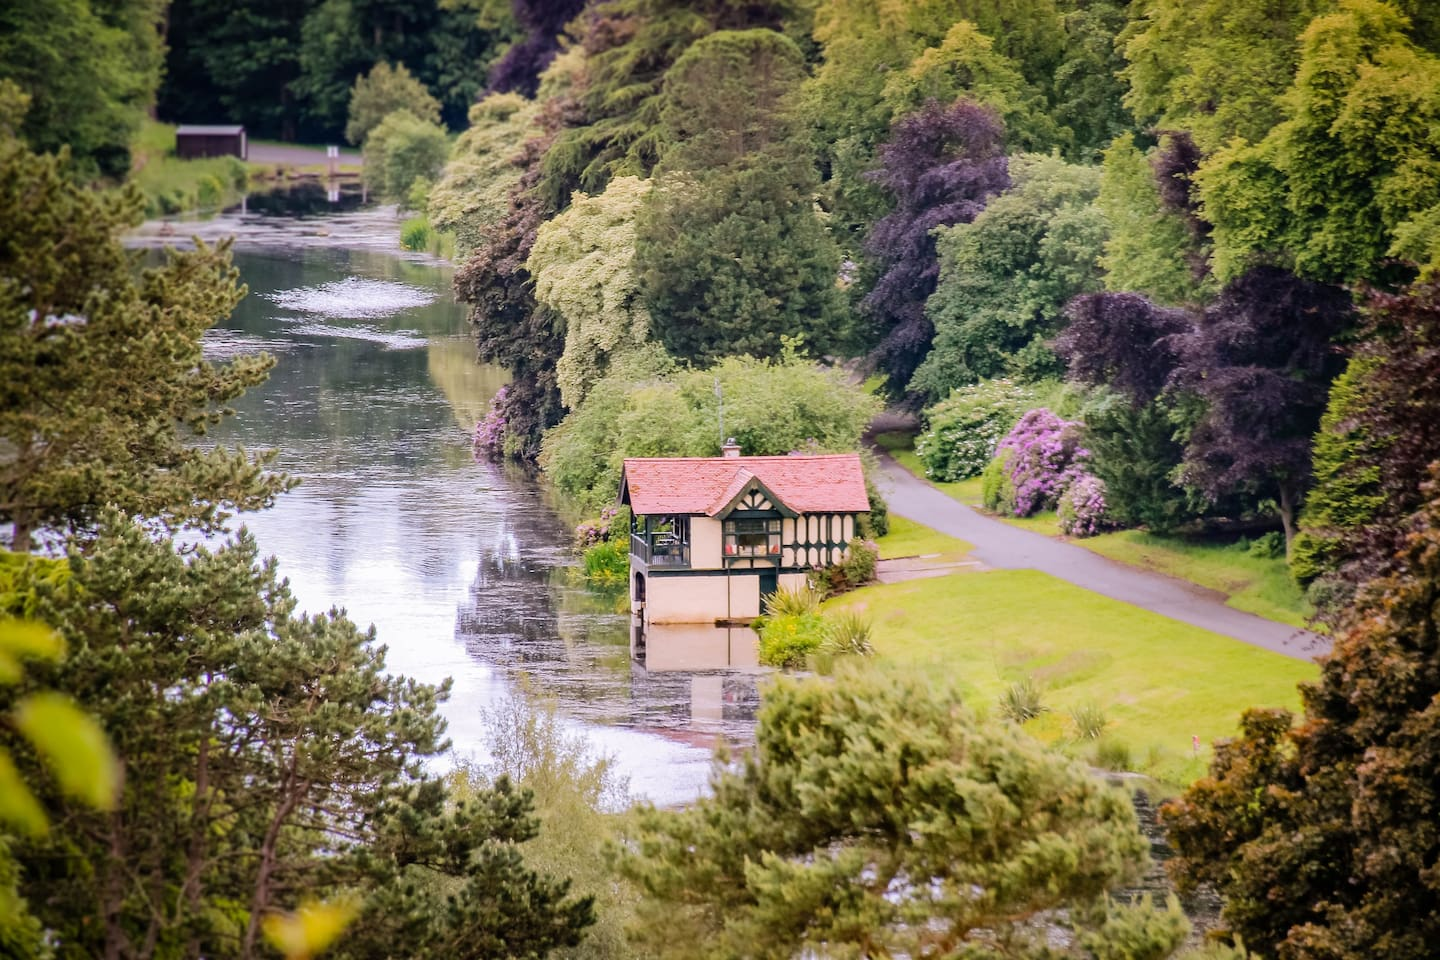 The Boathouse on the loch